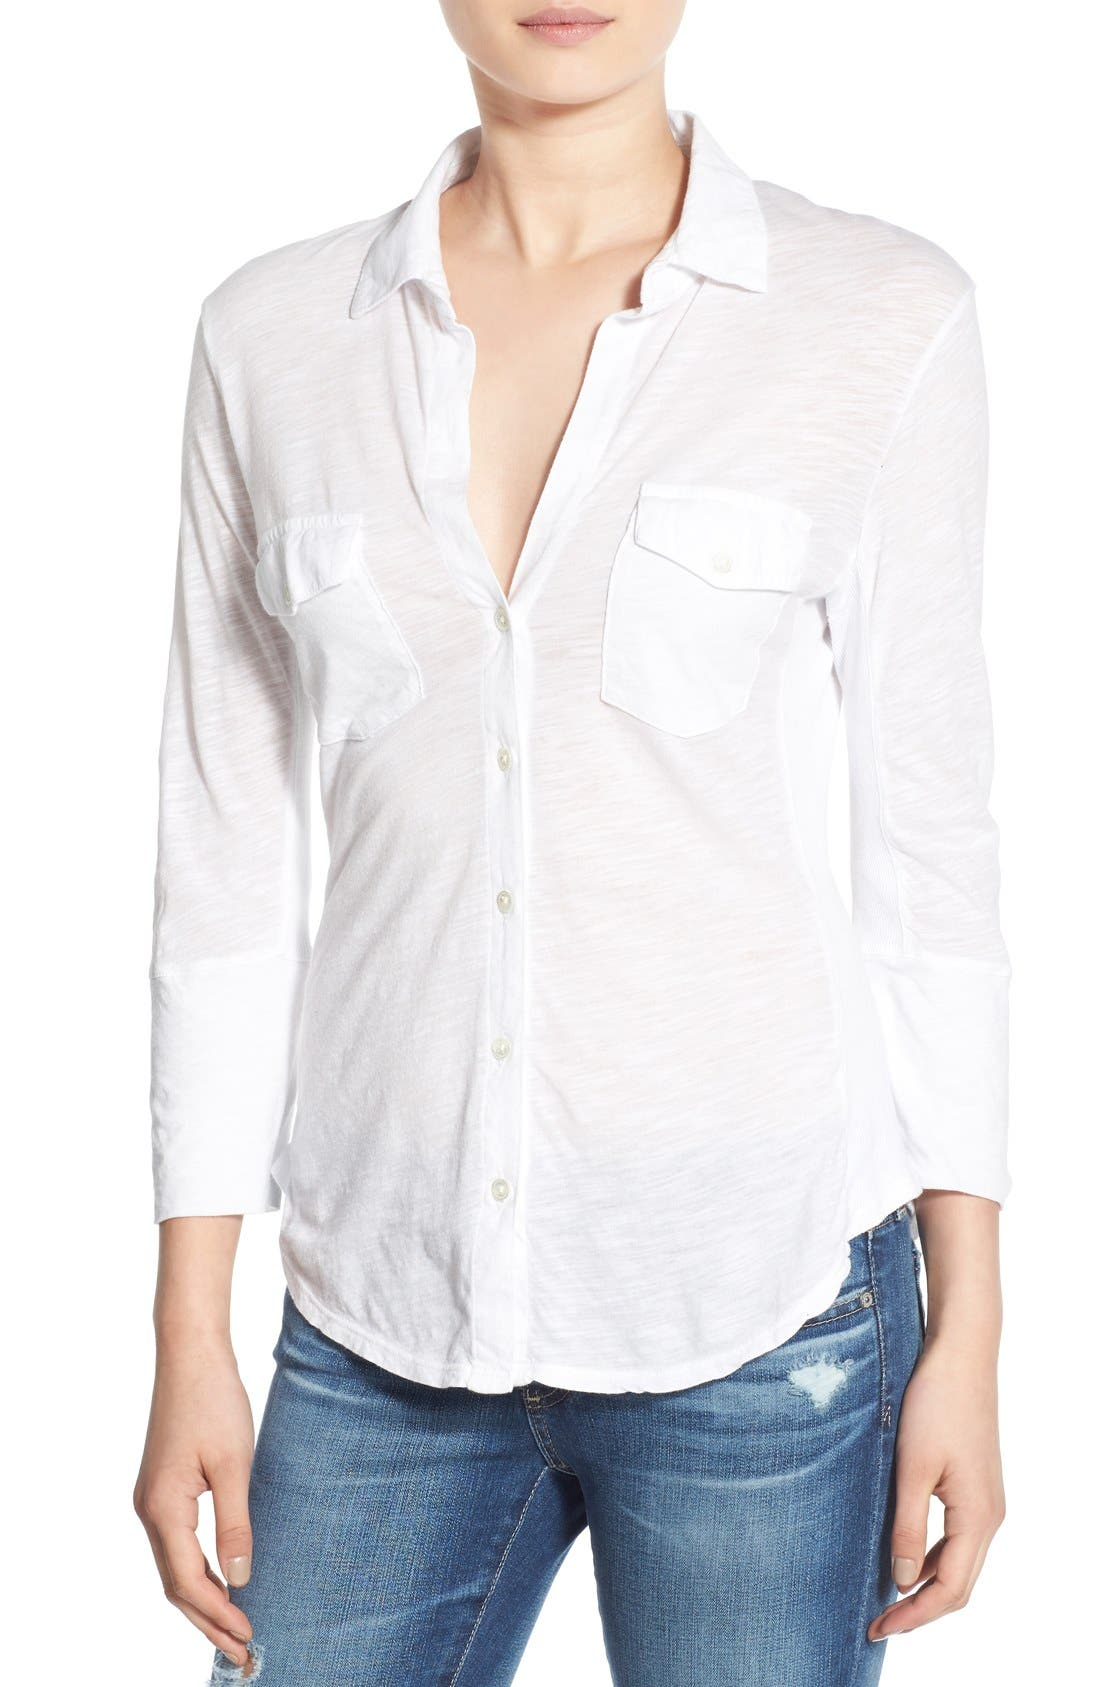 Main Image - James Perse Sheer Slub Panel Shirt